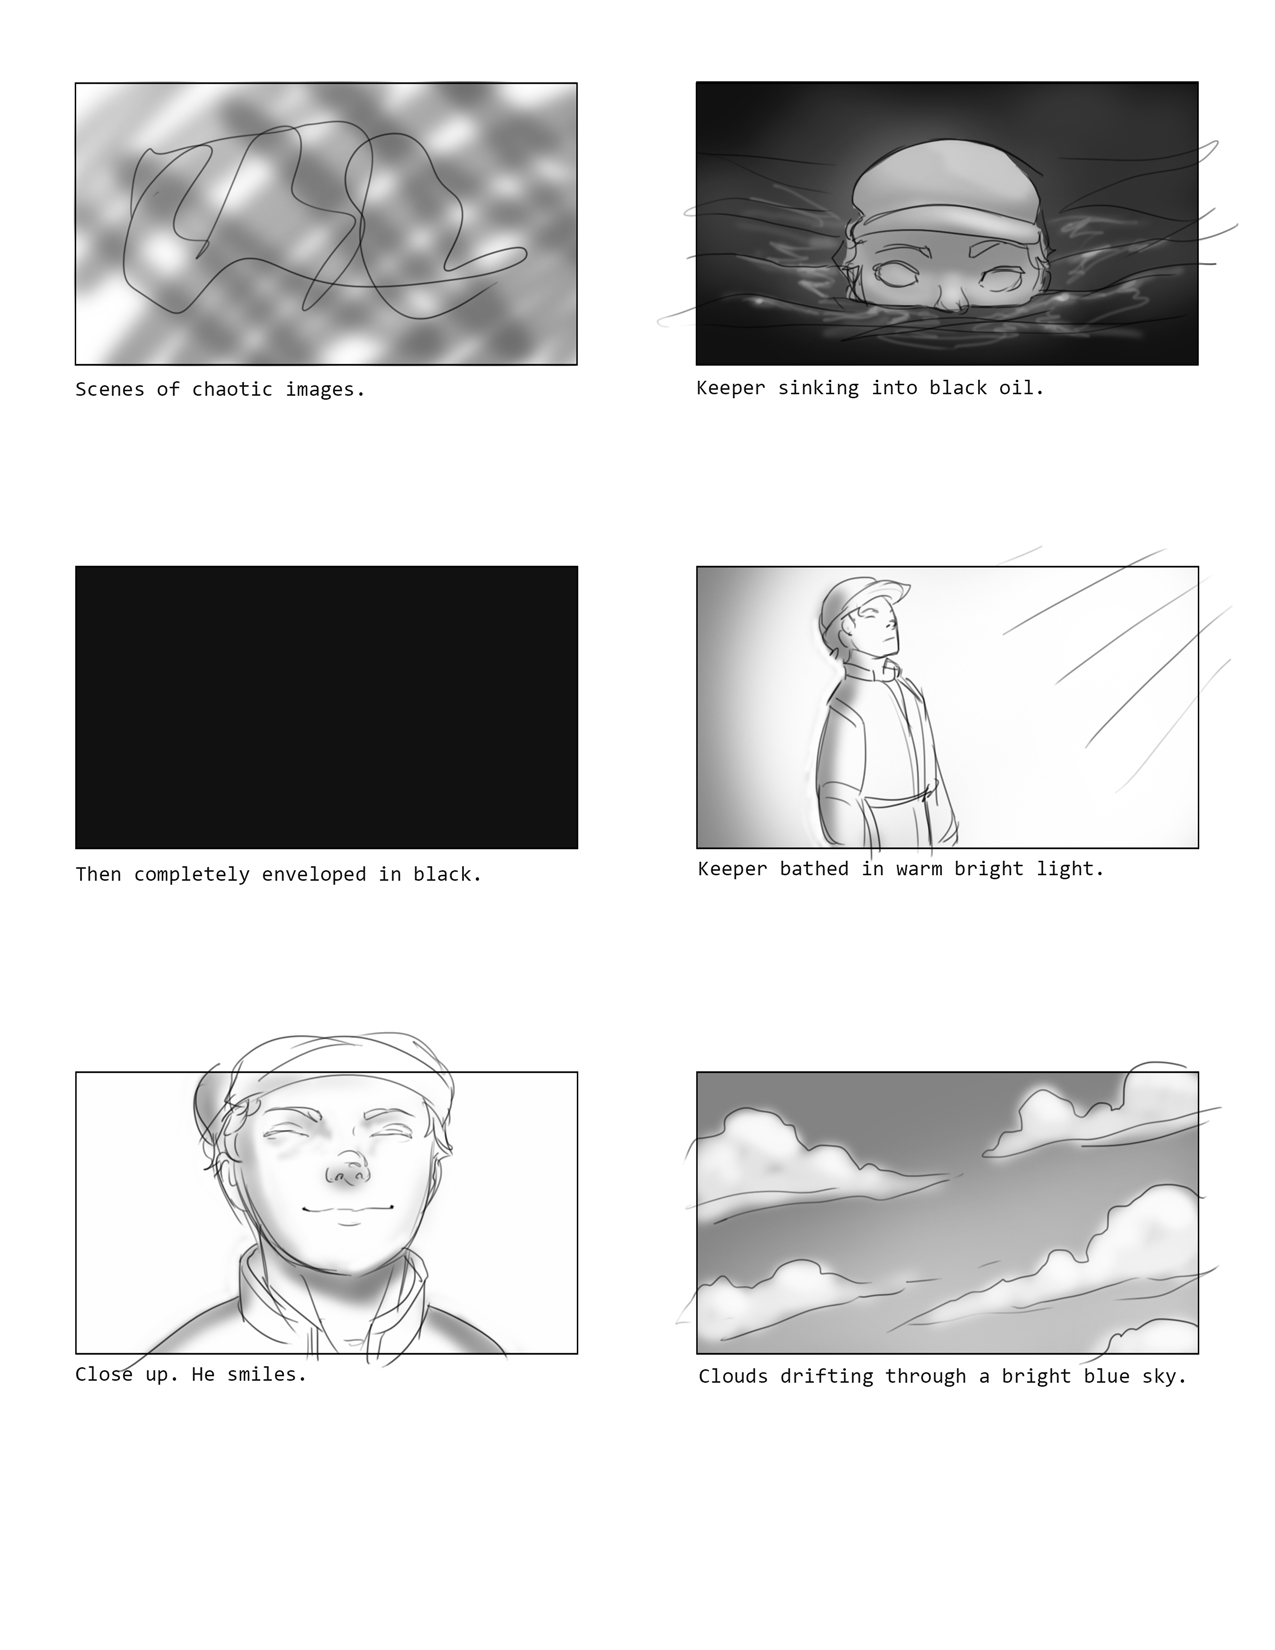 velorenstoryboards17.jpg